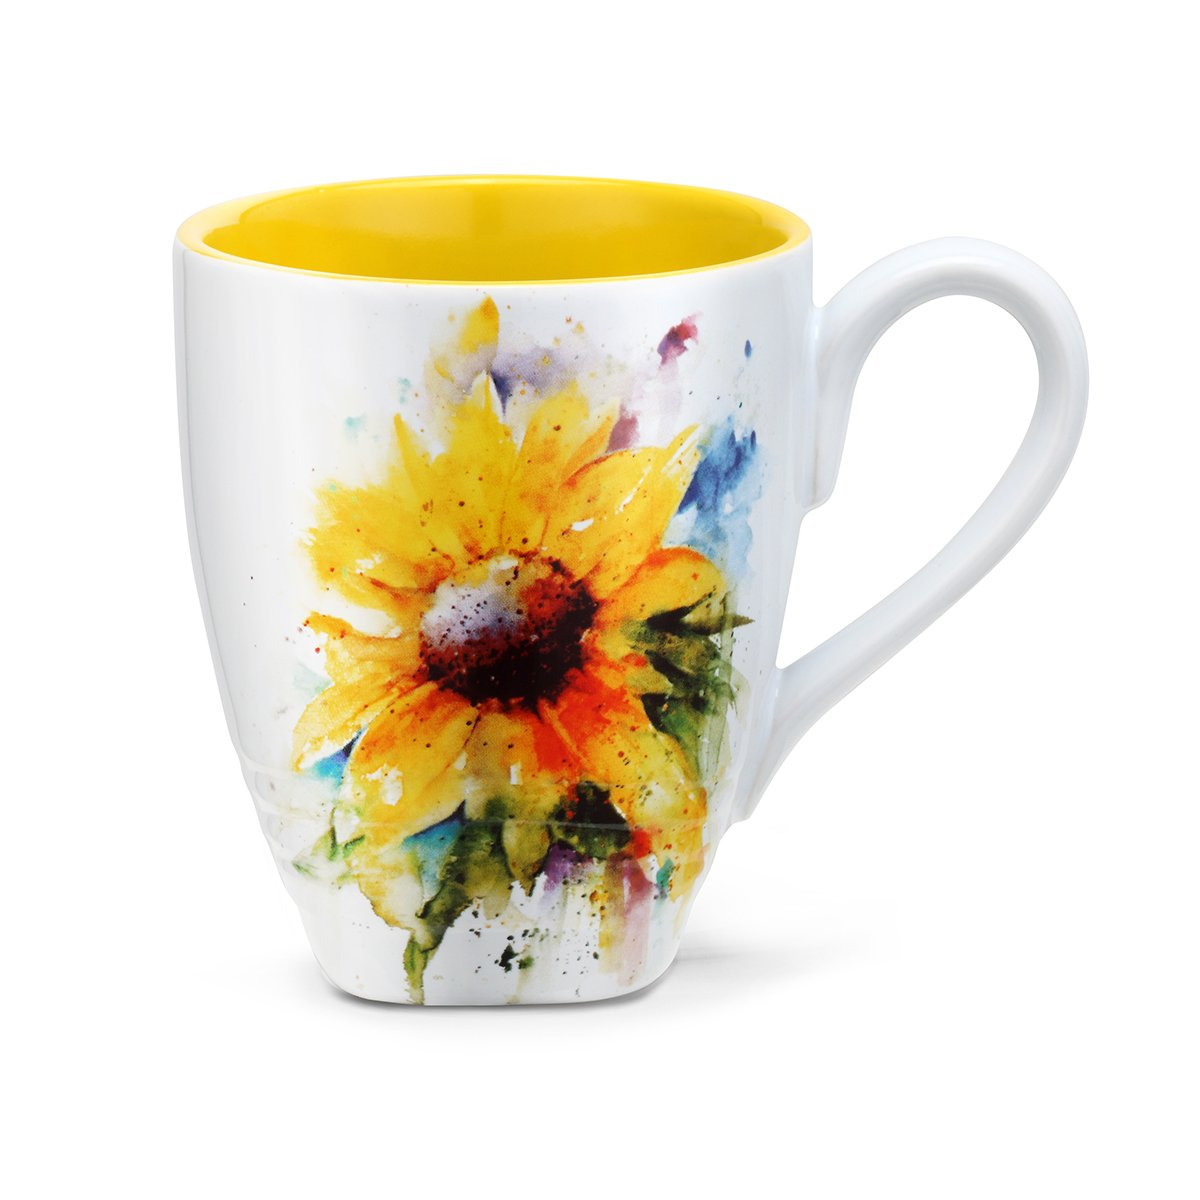 Big Sky Carvers Sunflower Mug watercolor style design